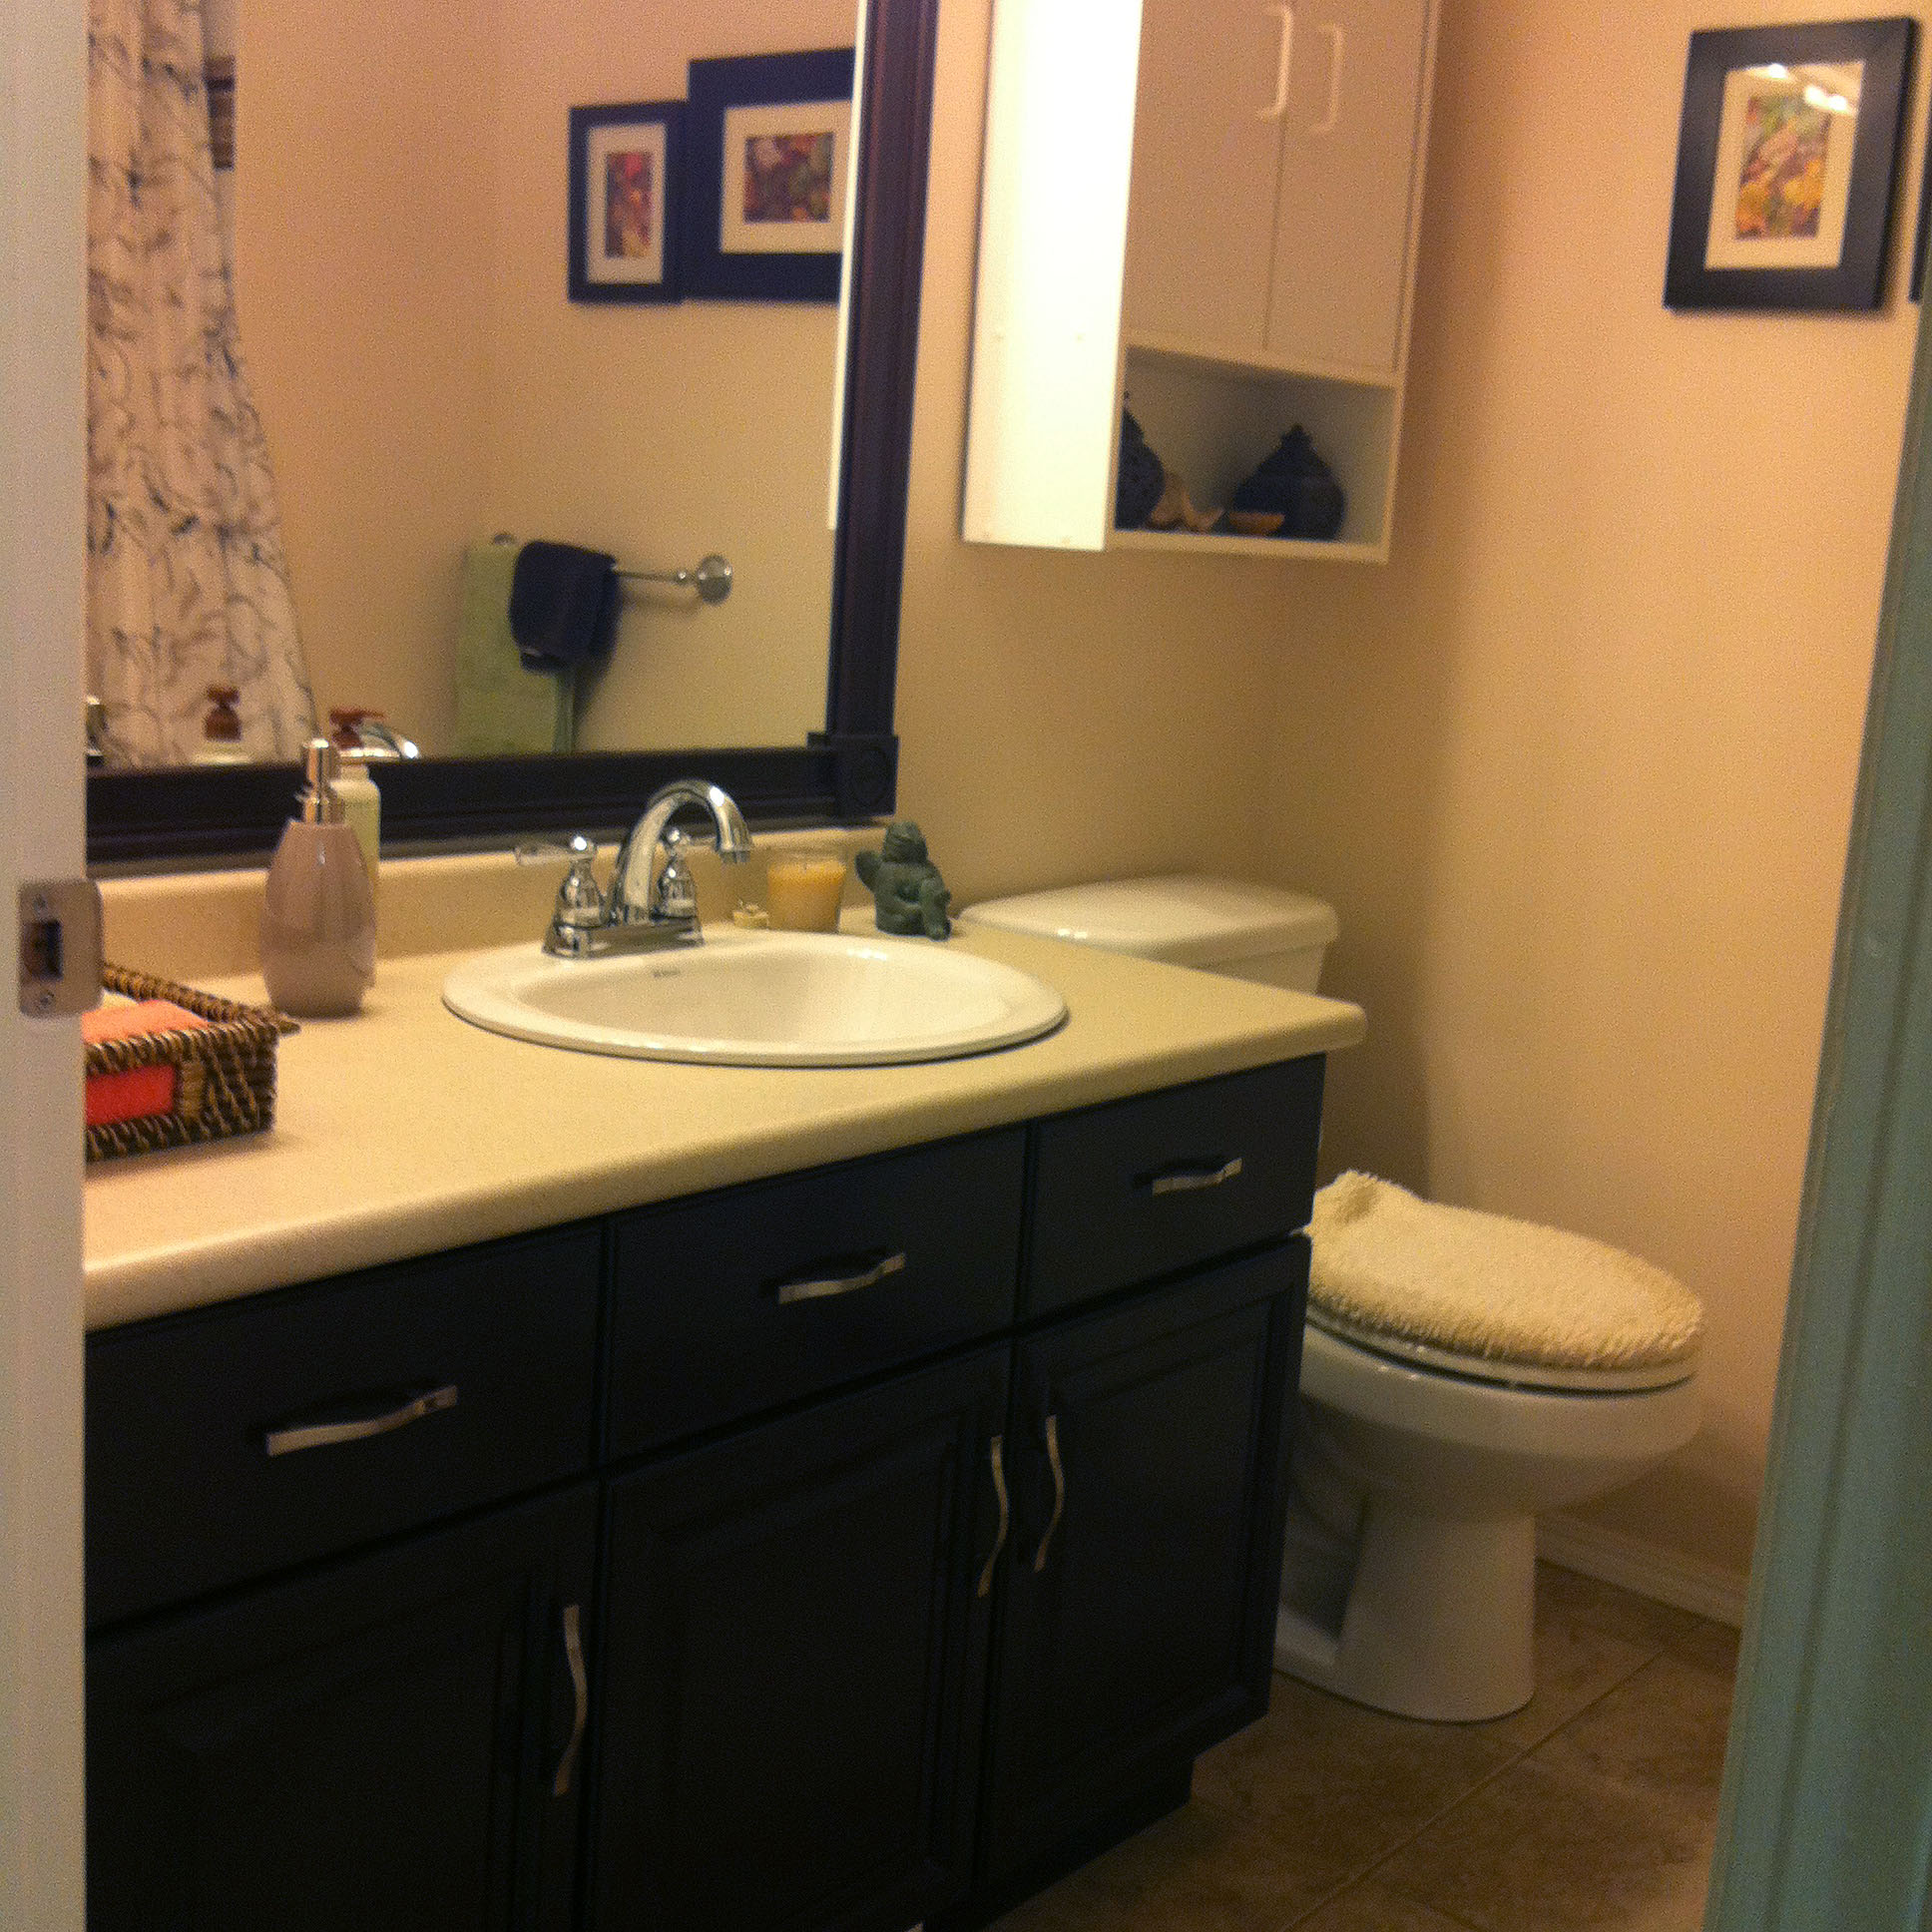 Home Repair Services Handyman Services Home Improvement - Bathroom repair services